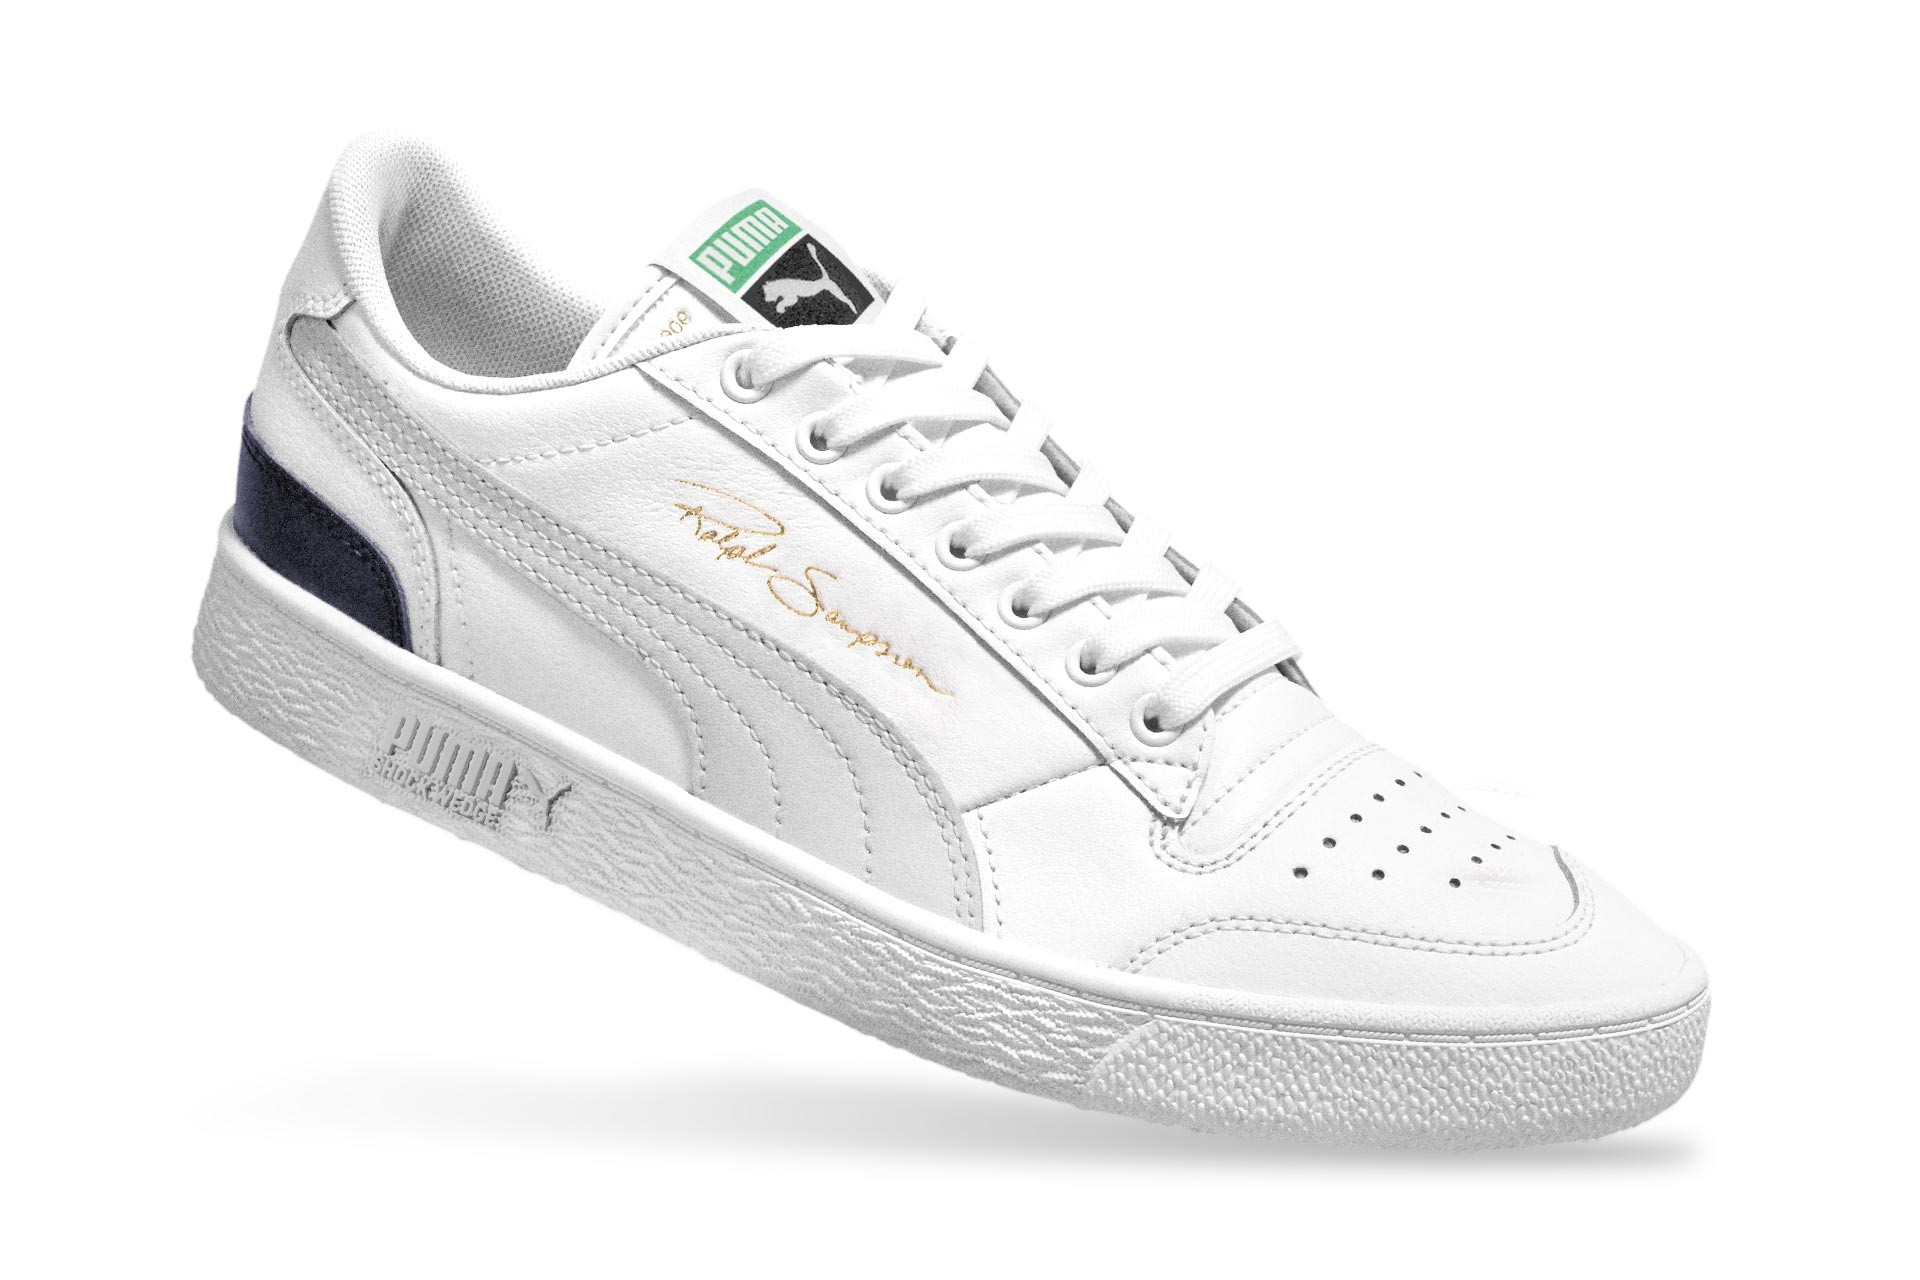 Foto van Puma Ralph Sampson Low Og 370719 01 Sneakers Puma White-Gray Violet-Peacoat April